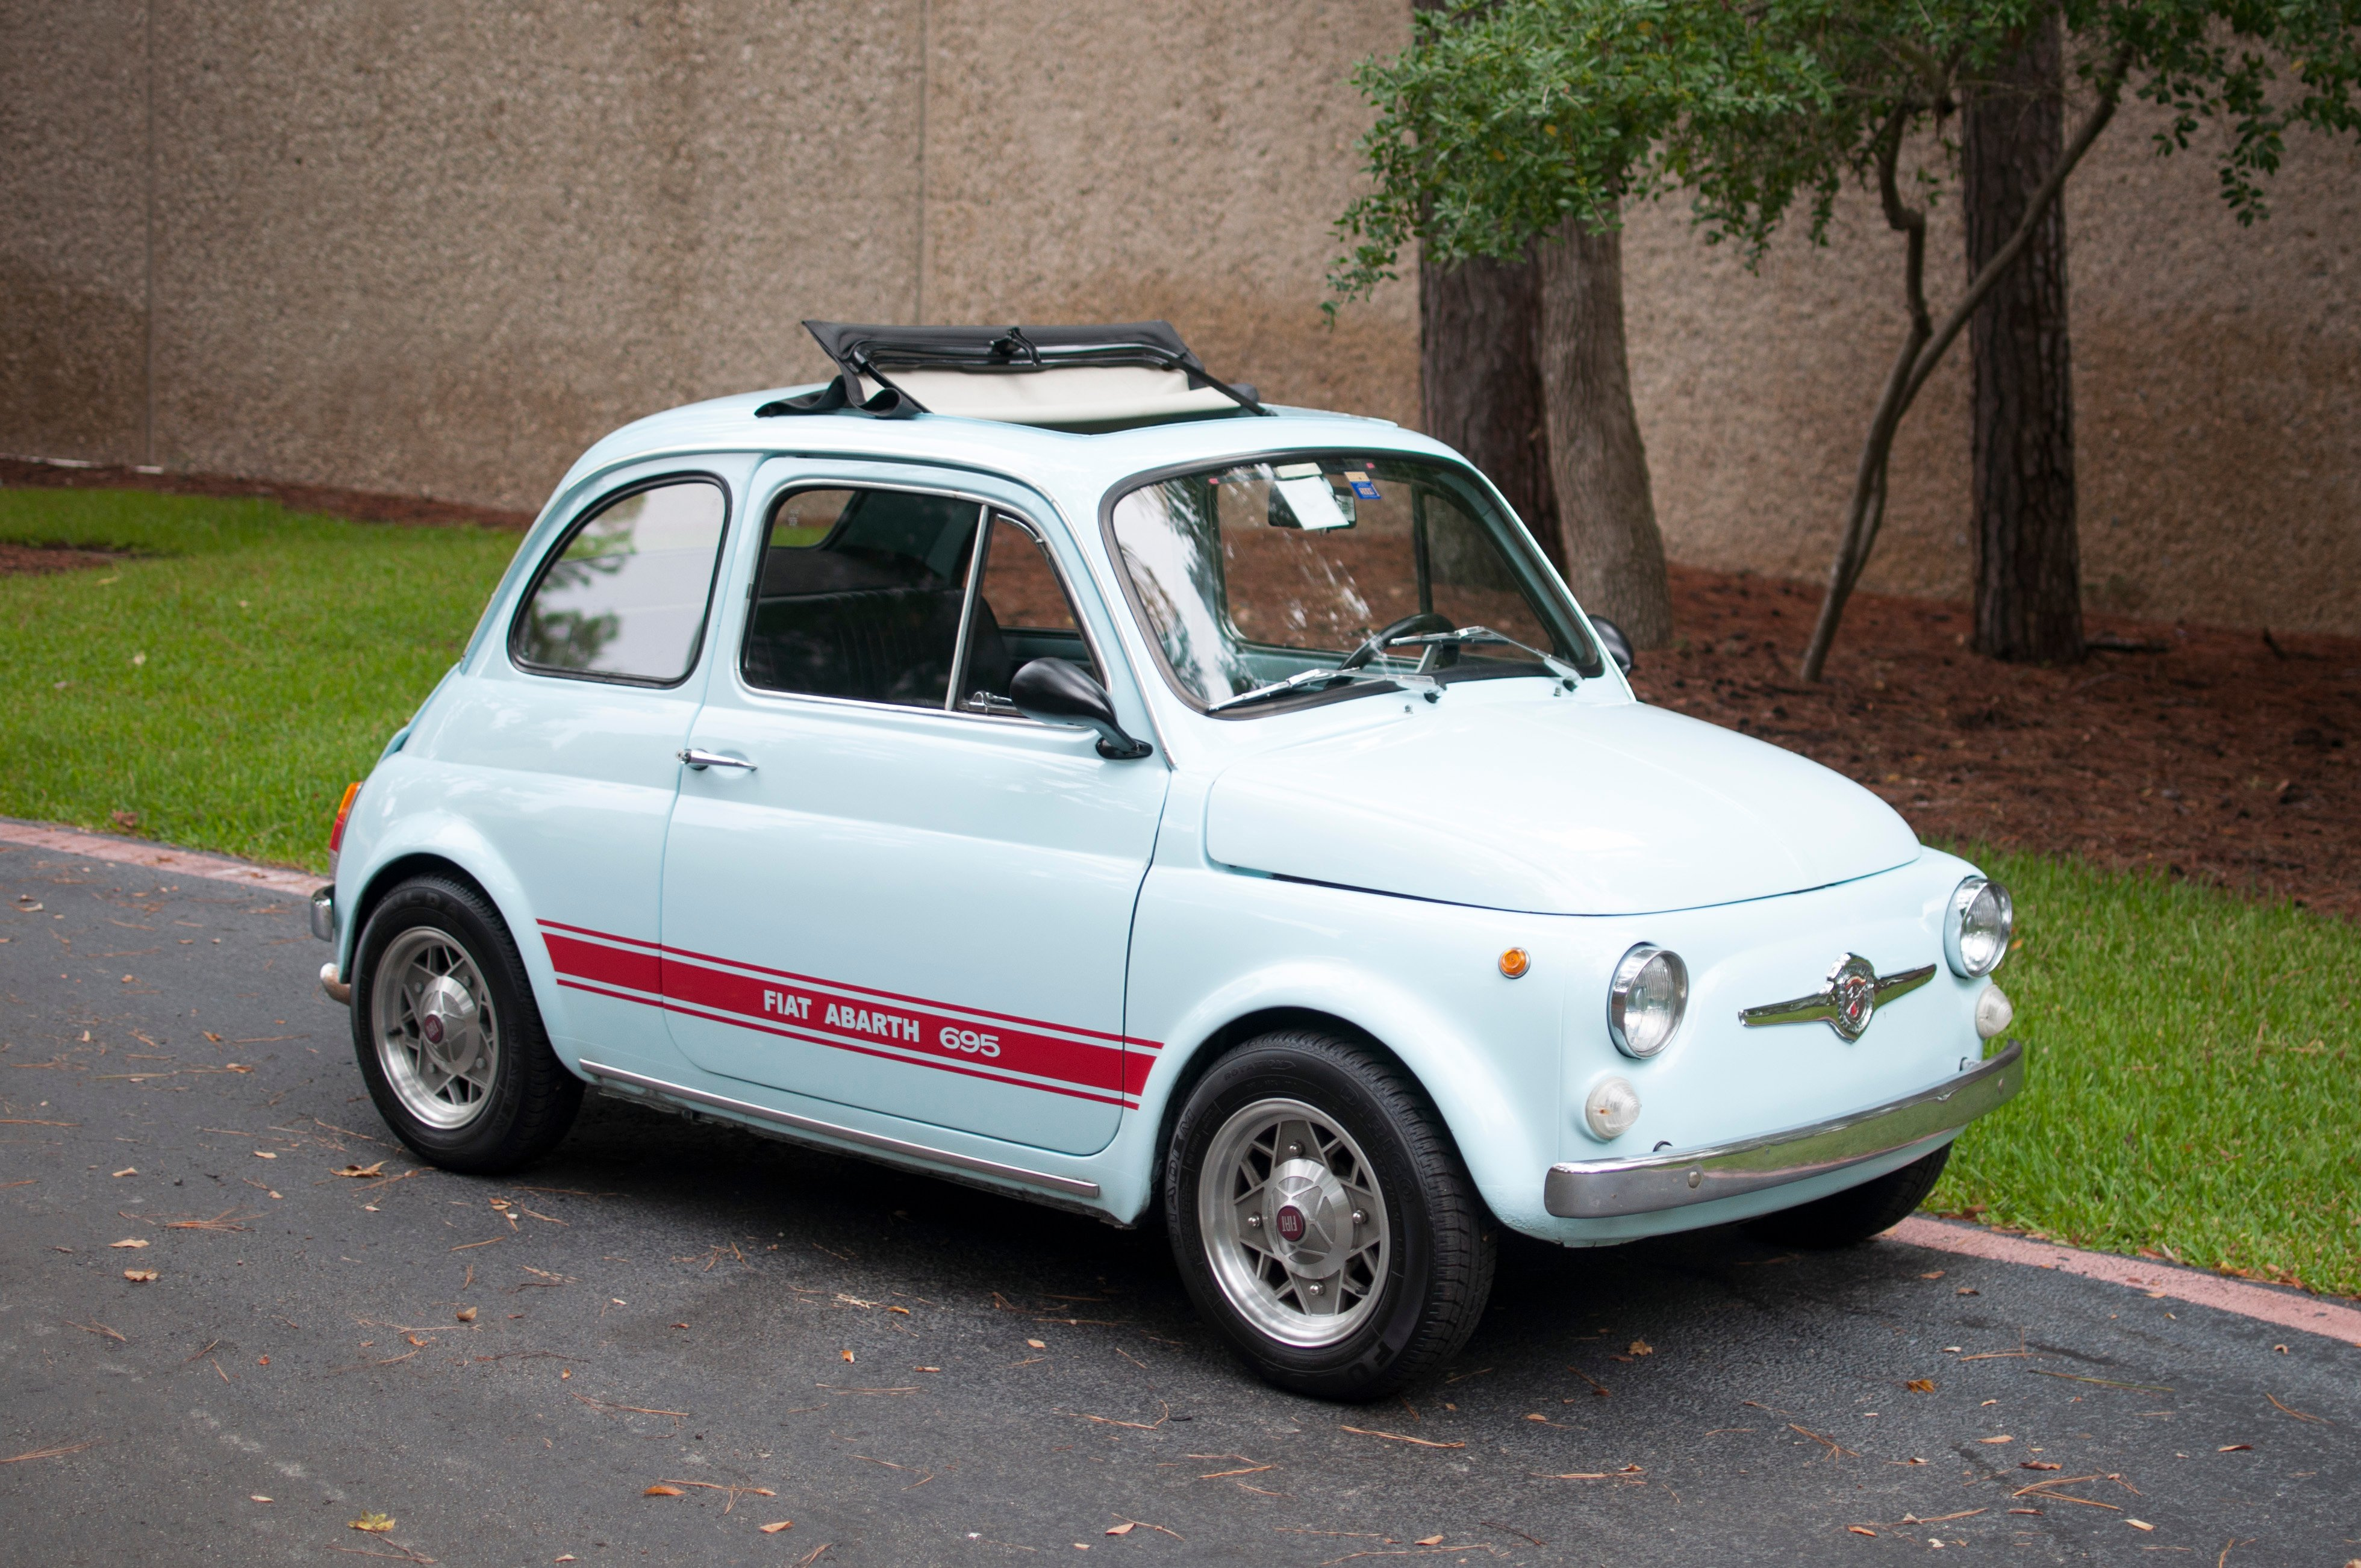 fiat abarth prix fiat 500 abarth prix fiat 500 abarth ferrari prix photos fiat 500 abarth 695. Black Bedroom Furniture Sets. Home Design Ideas